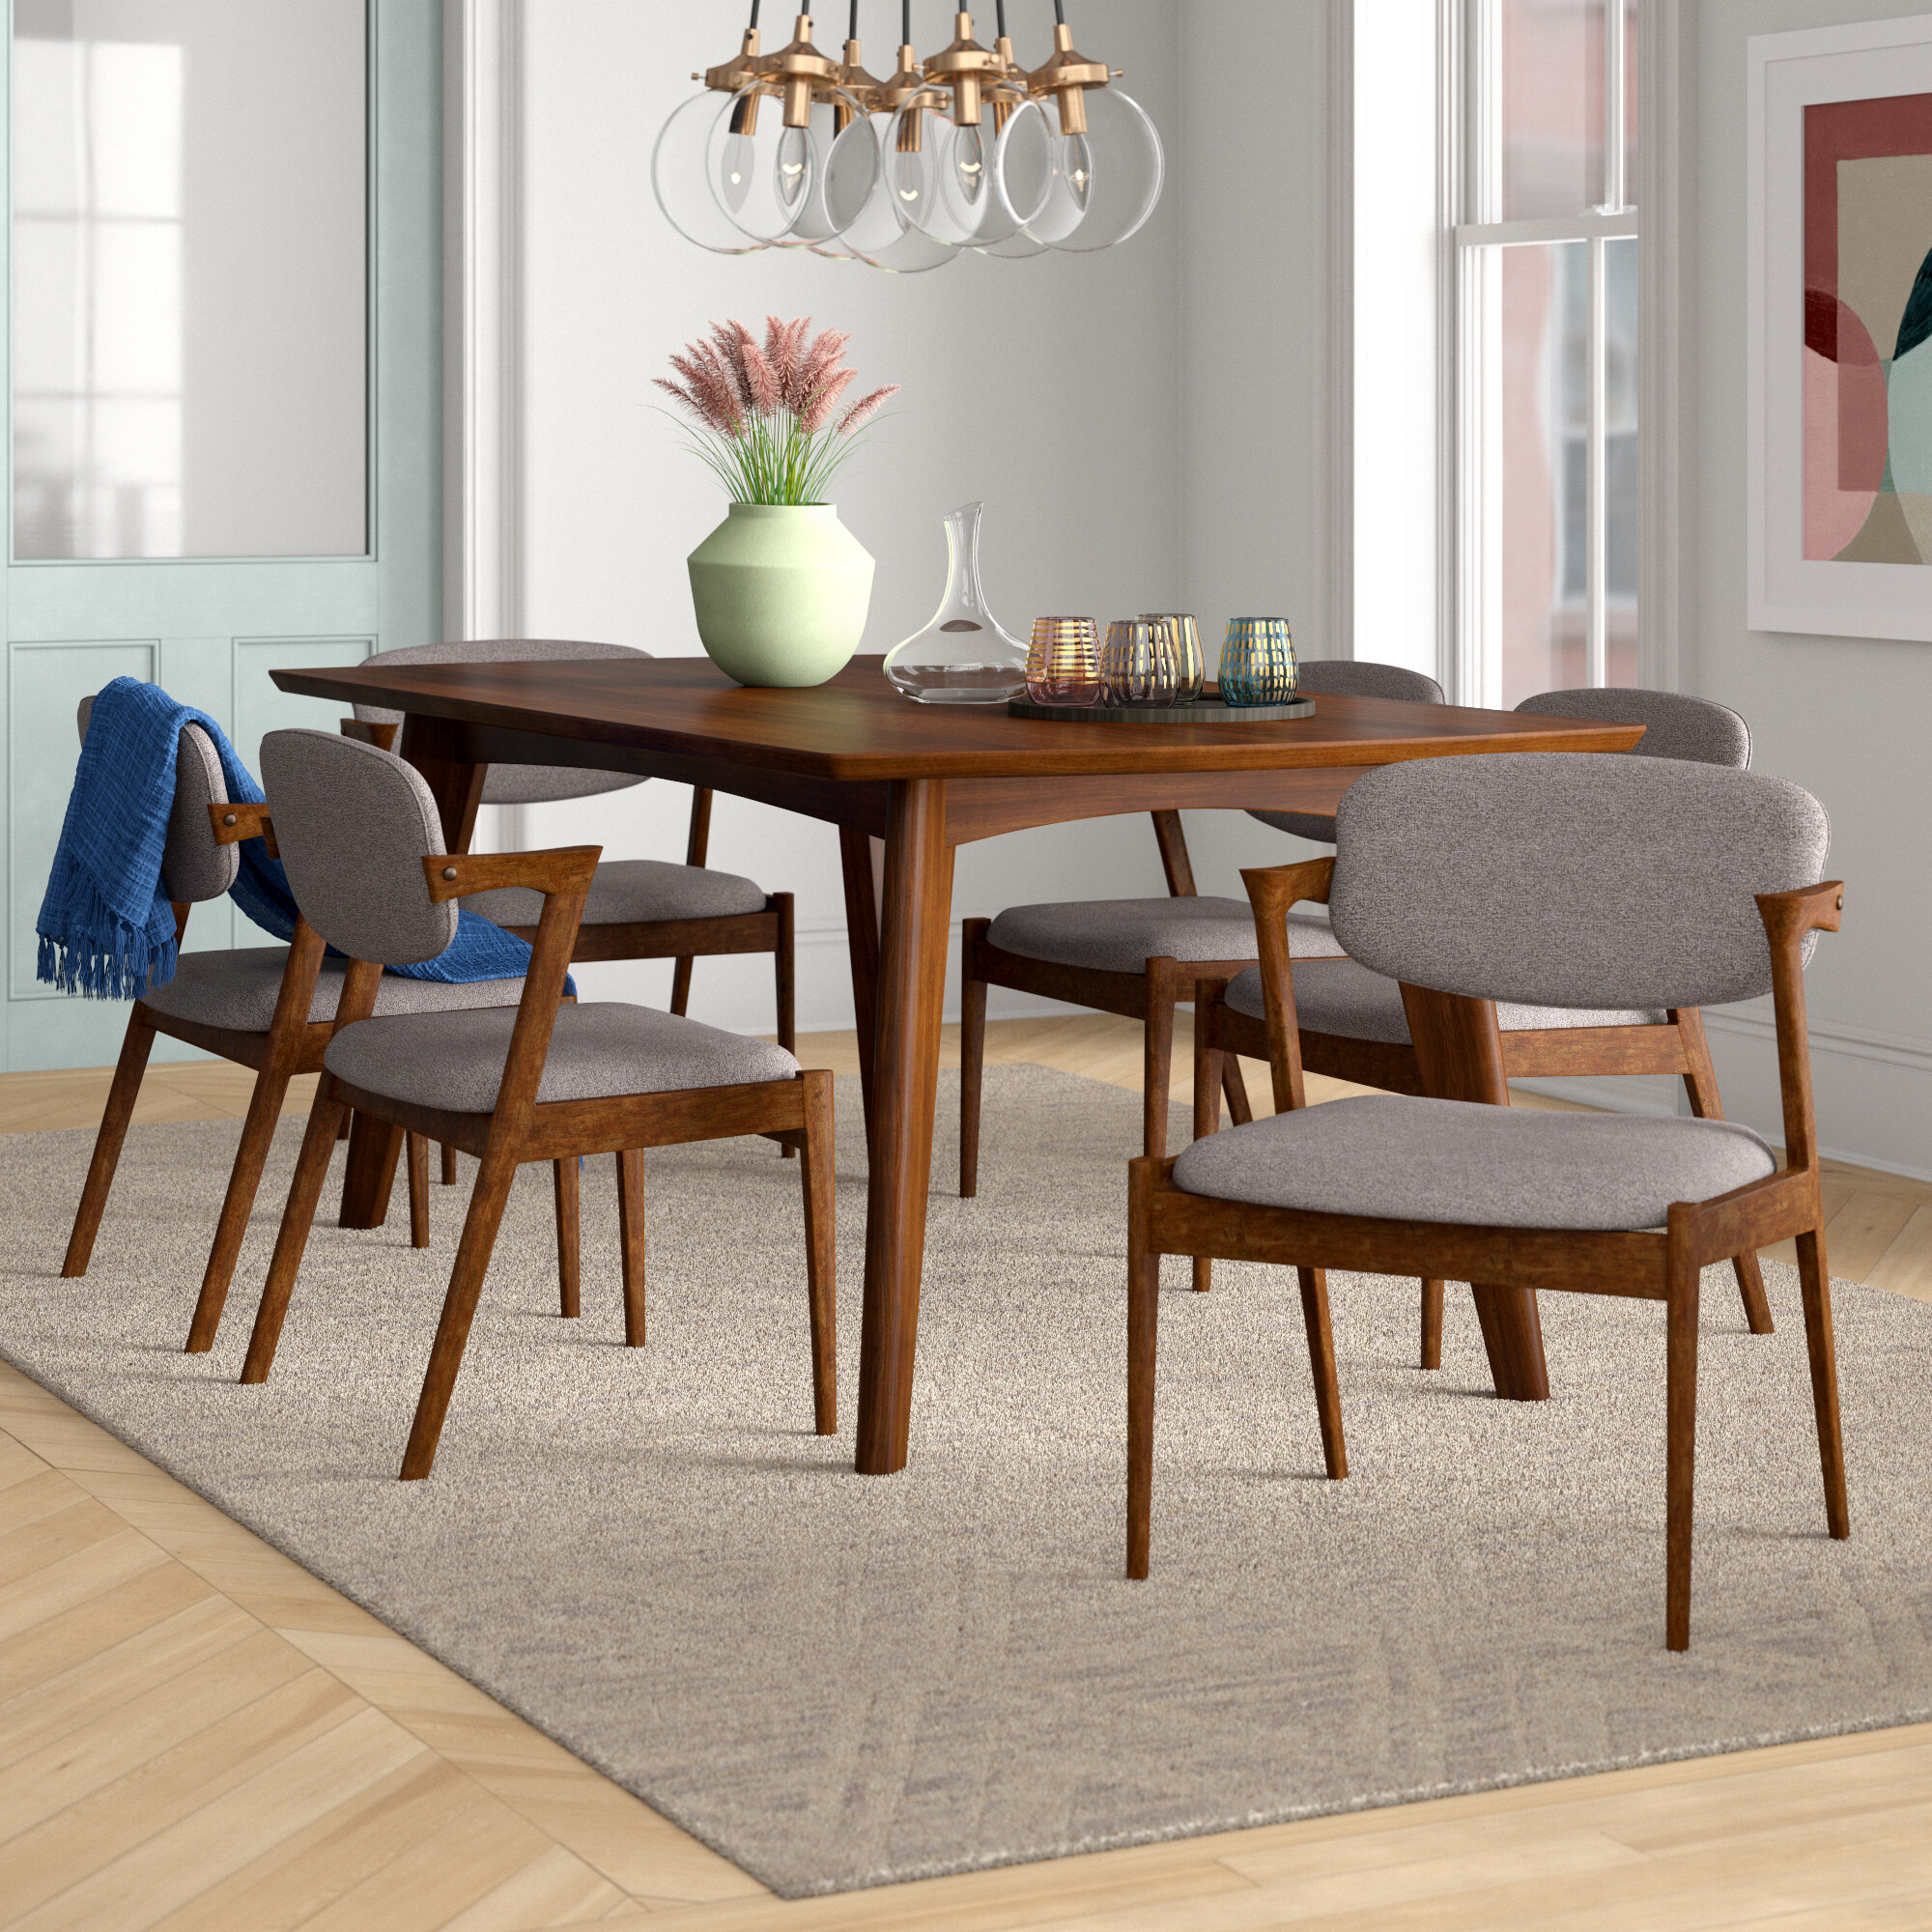 Mid Century Modern Kitchen & Dining Room Sets You'll Love in 9 ...